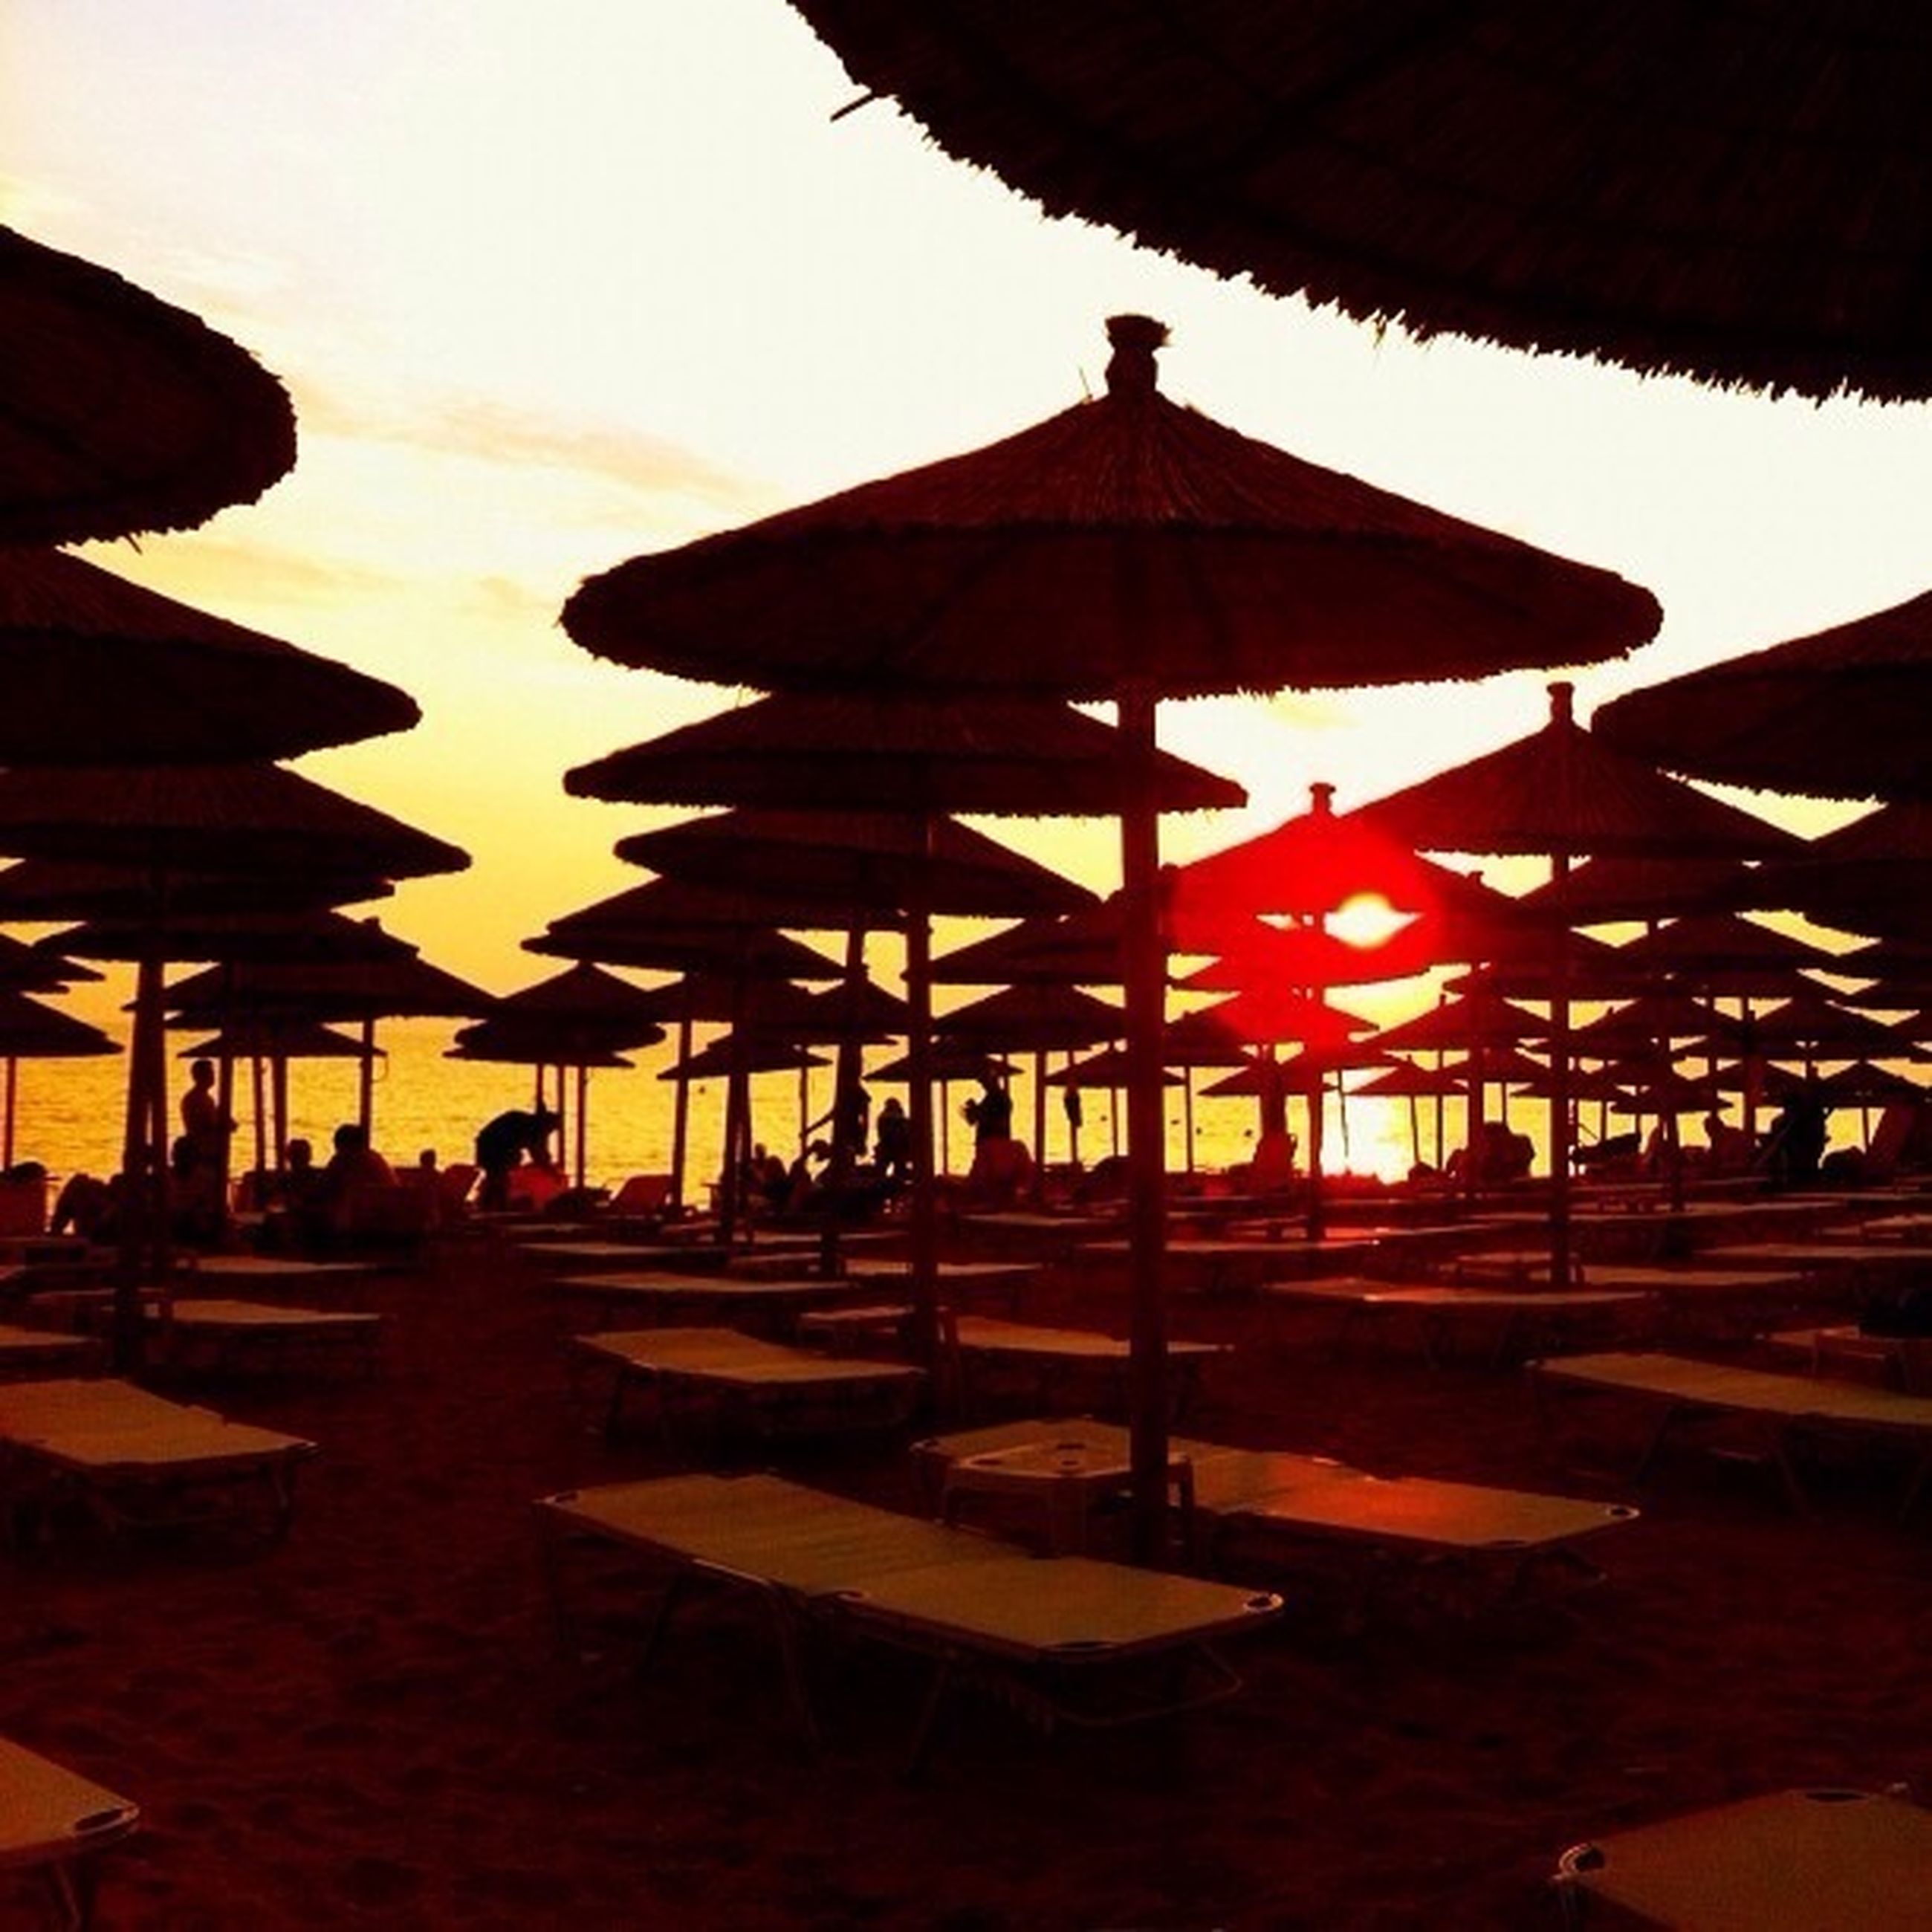 sunset, sea, beach, sky, built structure, incidental people, architecture, orange color, silhouette, sunlight, sand, illuminated, water, dusk, outdoors, shadow, travel destinations, in a row, horizon over water, travel